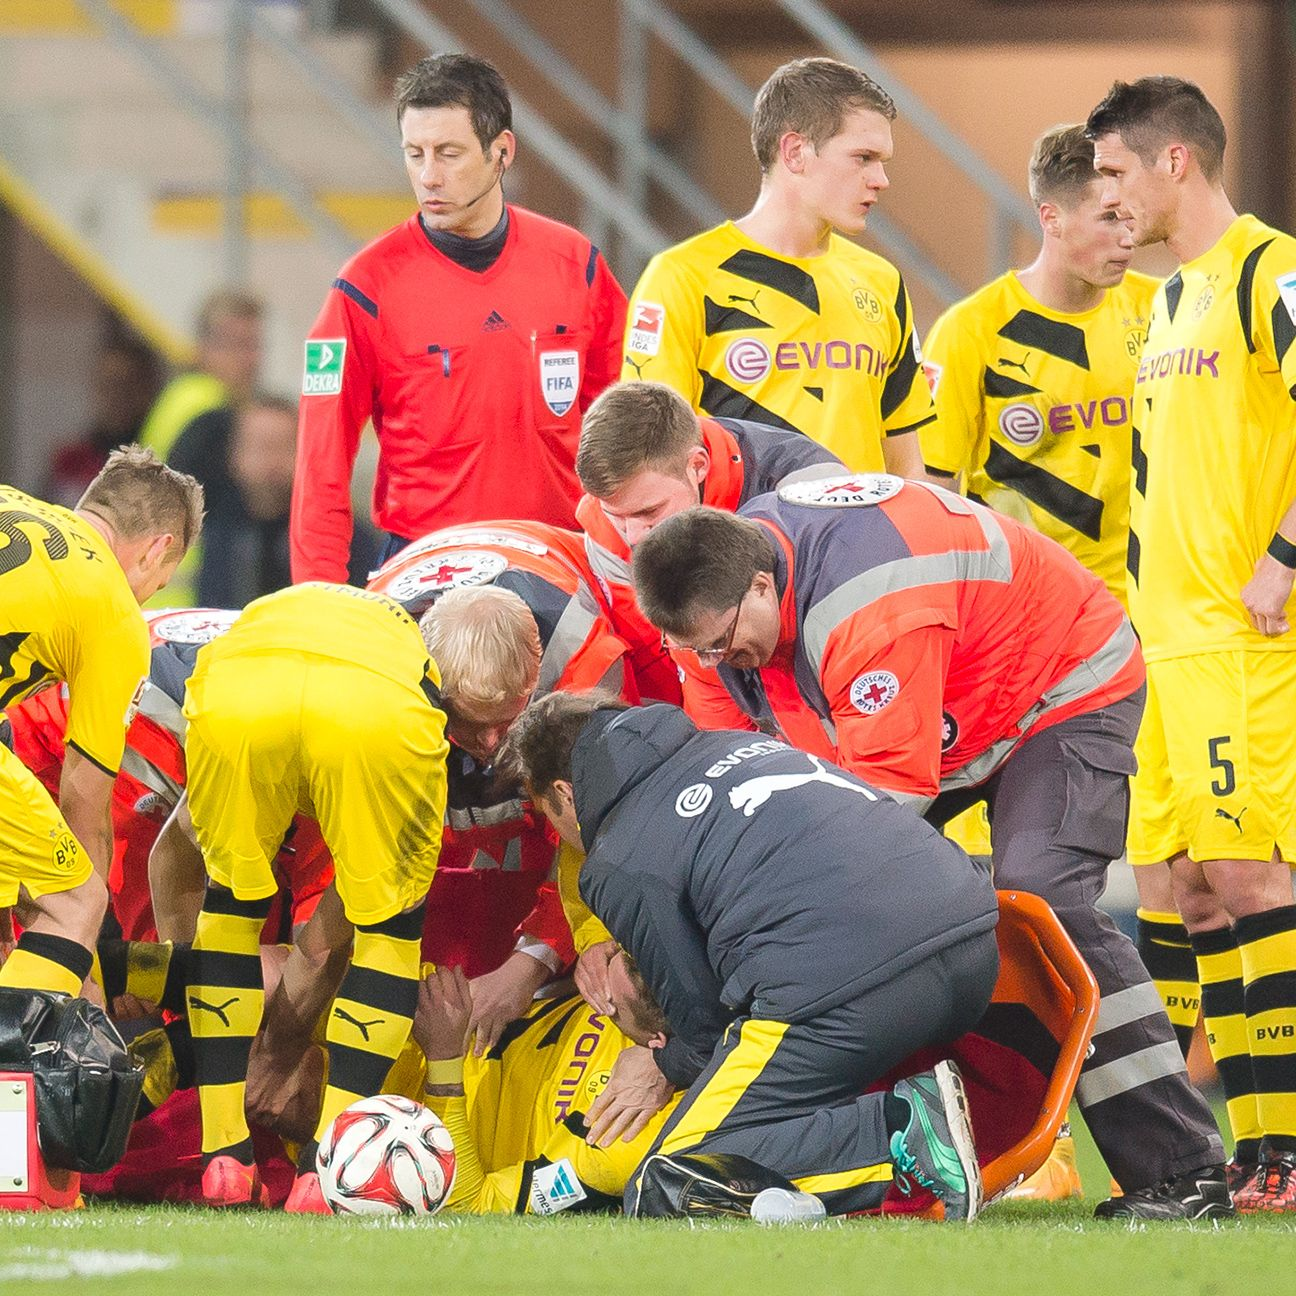 The injury bug has struck Borussia Dortmund again, with Marco Reus forced to leave Saturday's 2-2 draw against Paderborn.